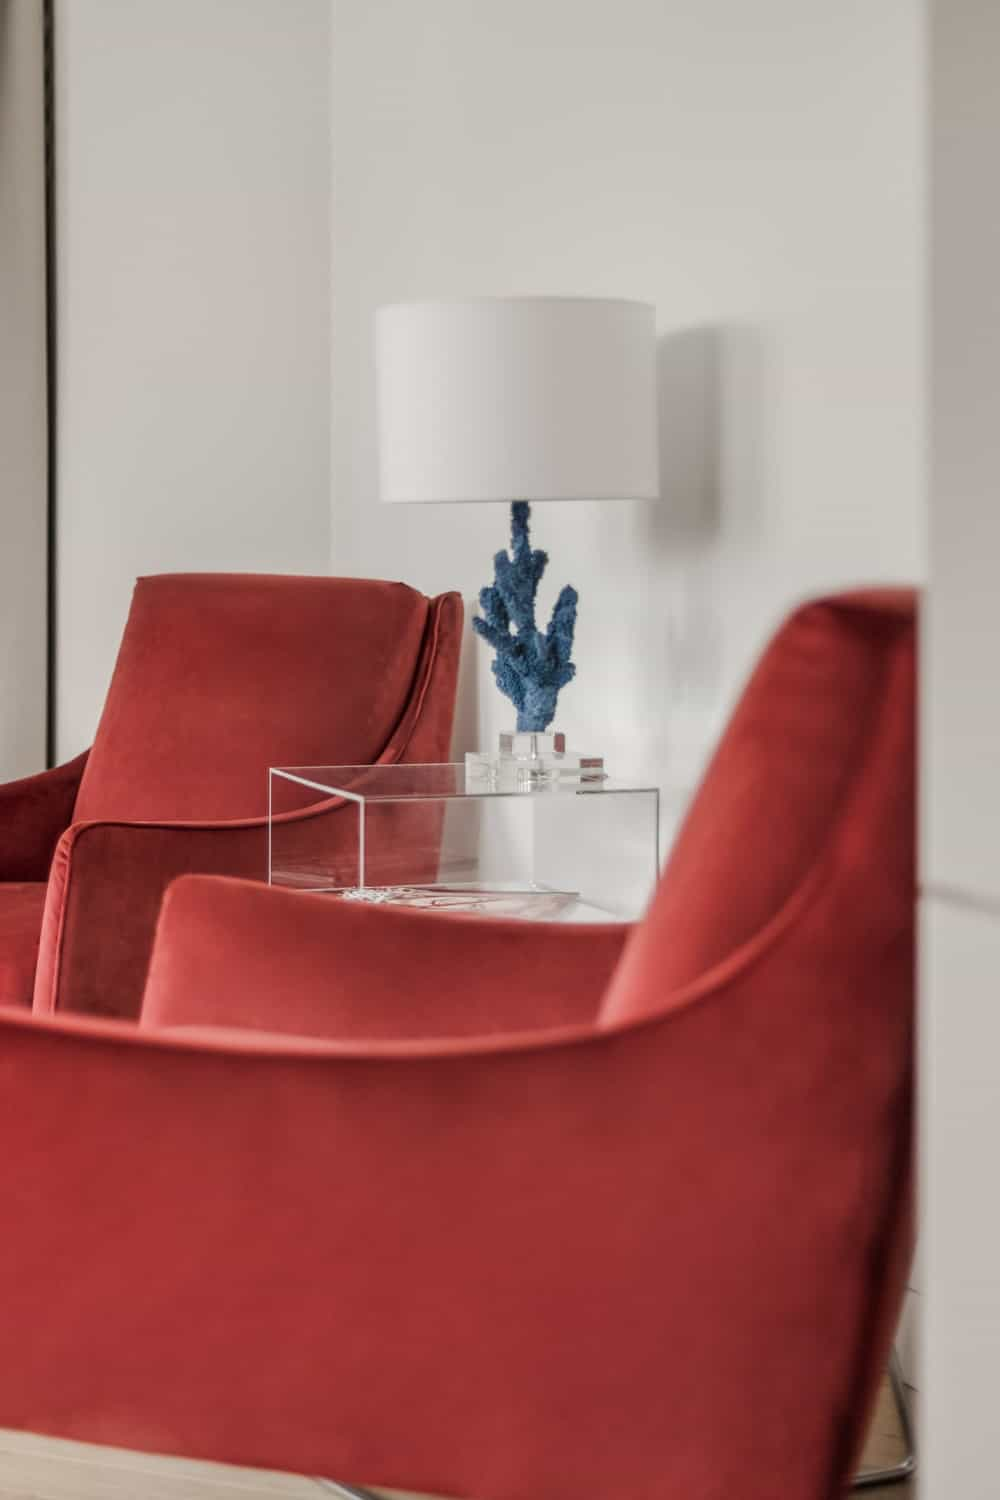 In between these two red velvet arm chairs is a glass modern side table with a table lamp on top.